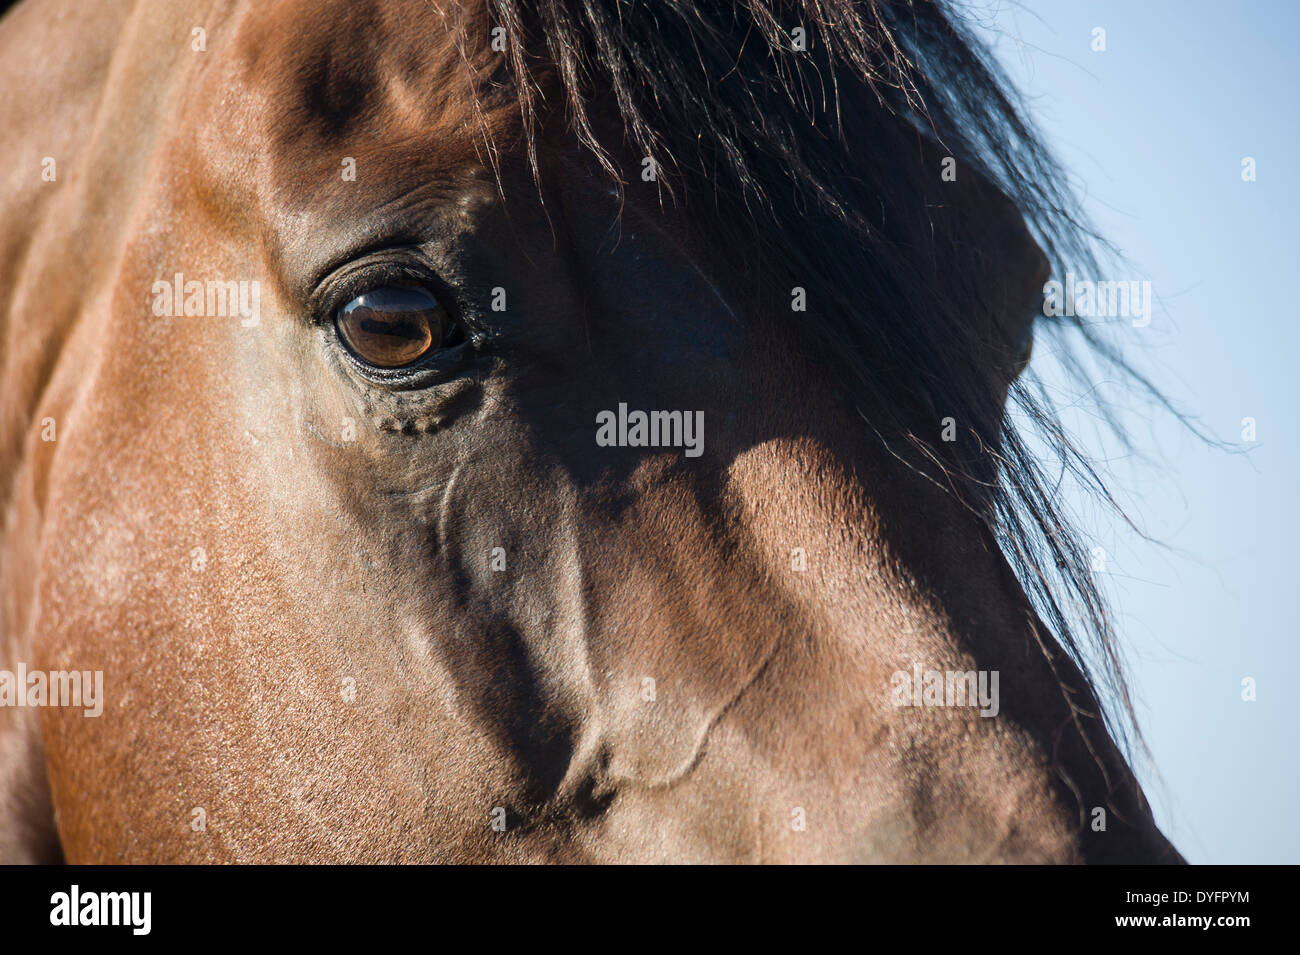 Detail of Quarter Horse stallion head and eyes - Stock Image